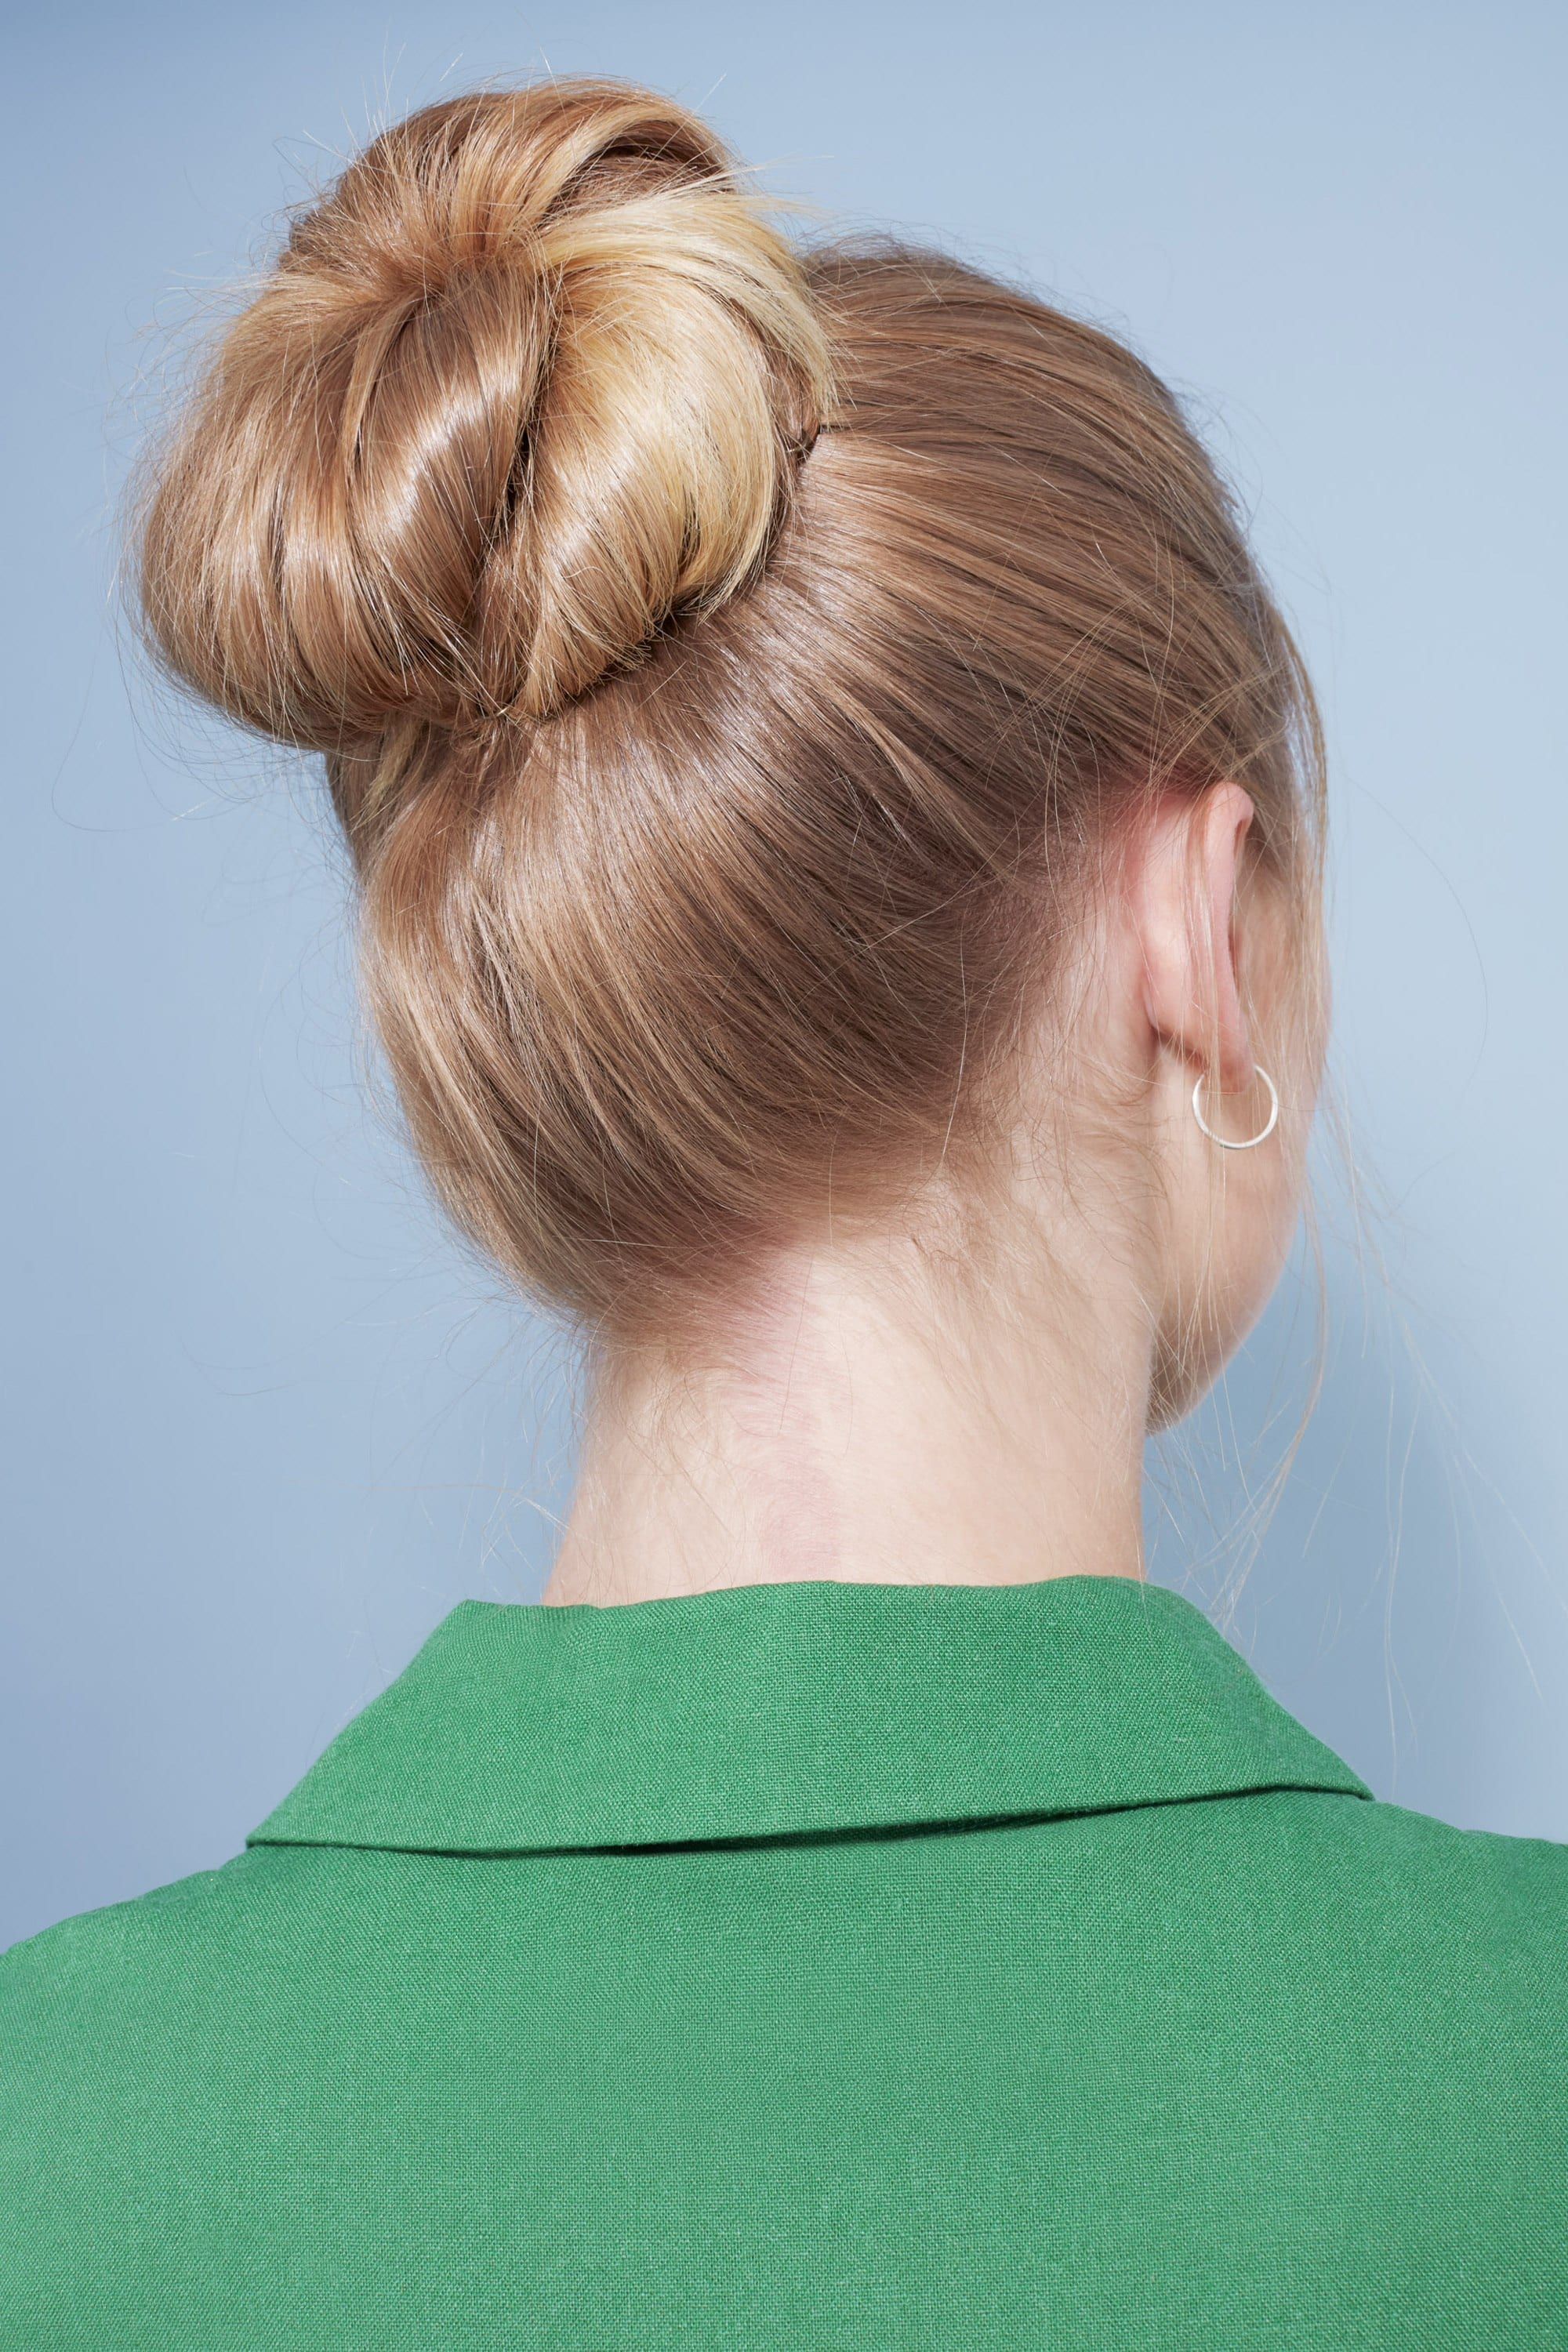 Woman with golden hair styled into a bun